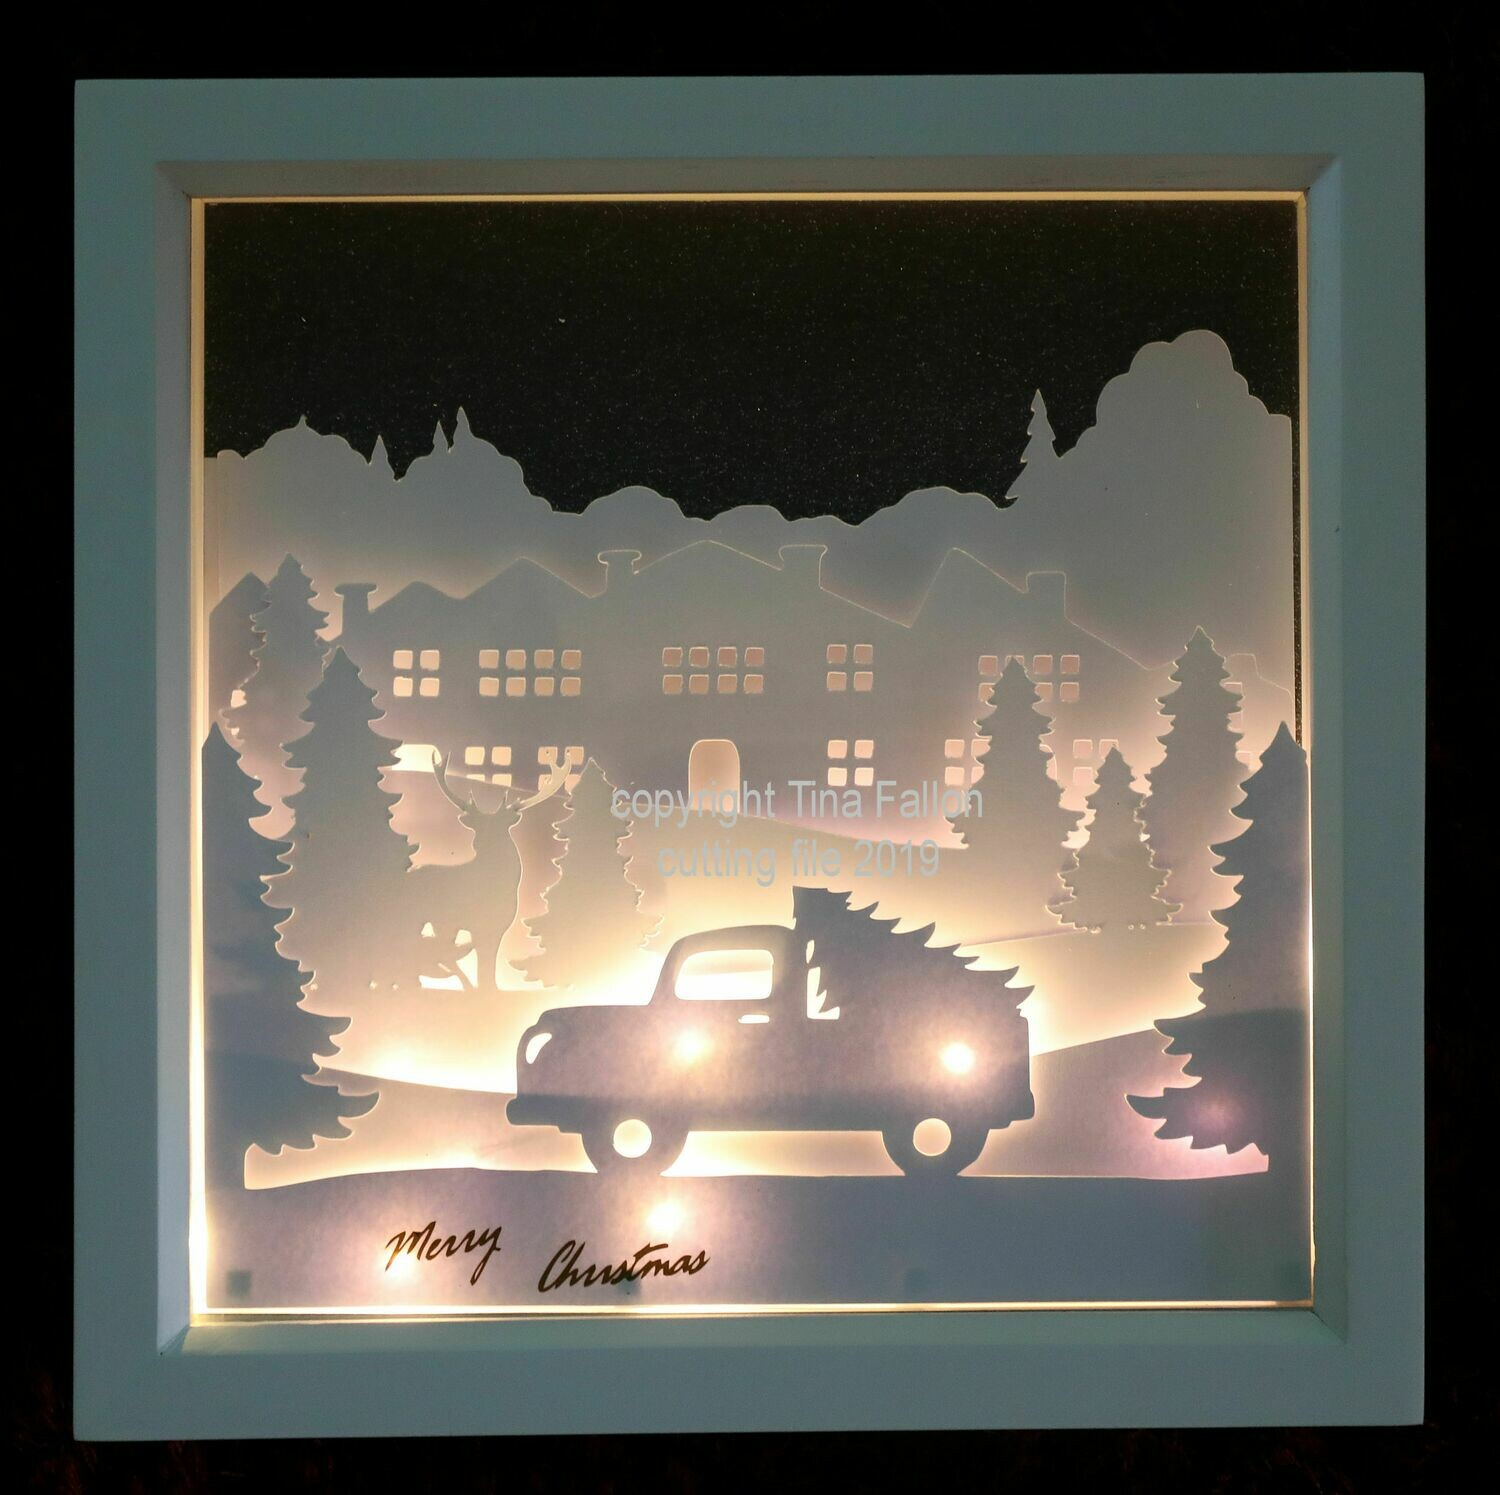 Red Truck Driving Home for Christmas Scene - Multi layered & suitable for Shadow Box frame